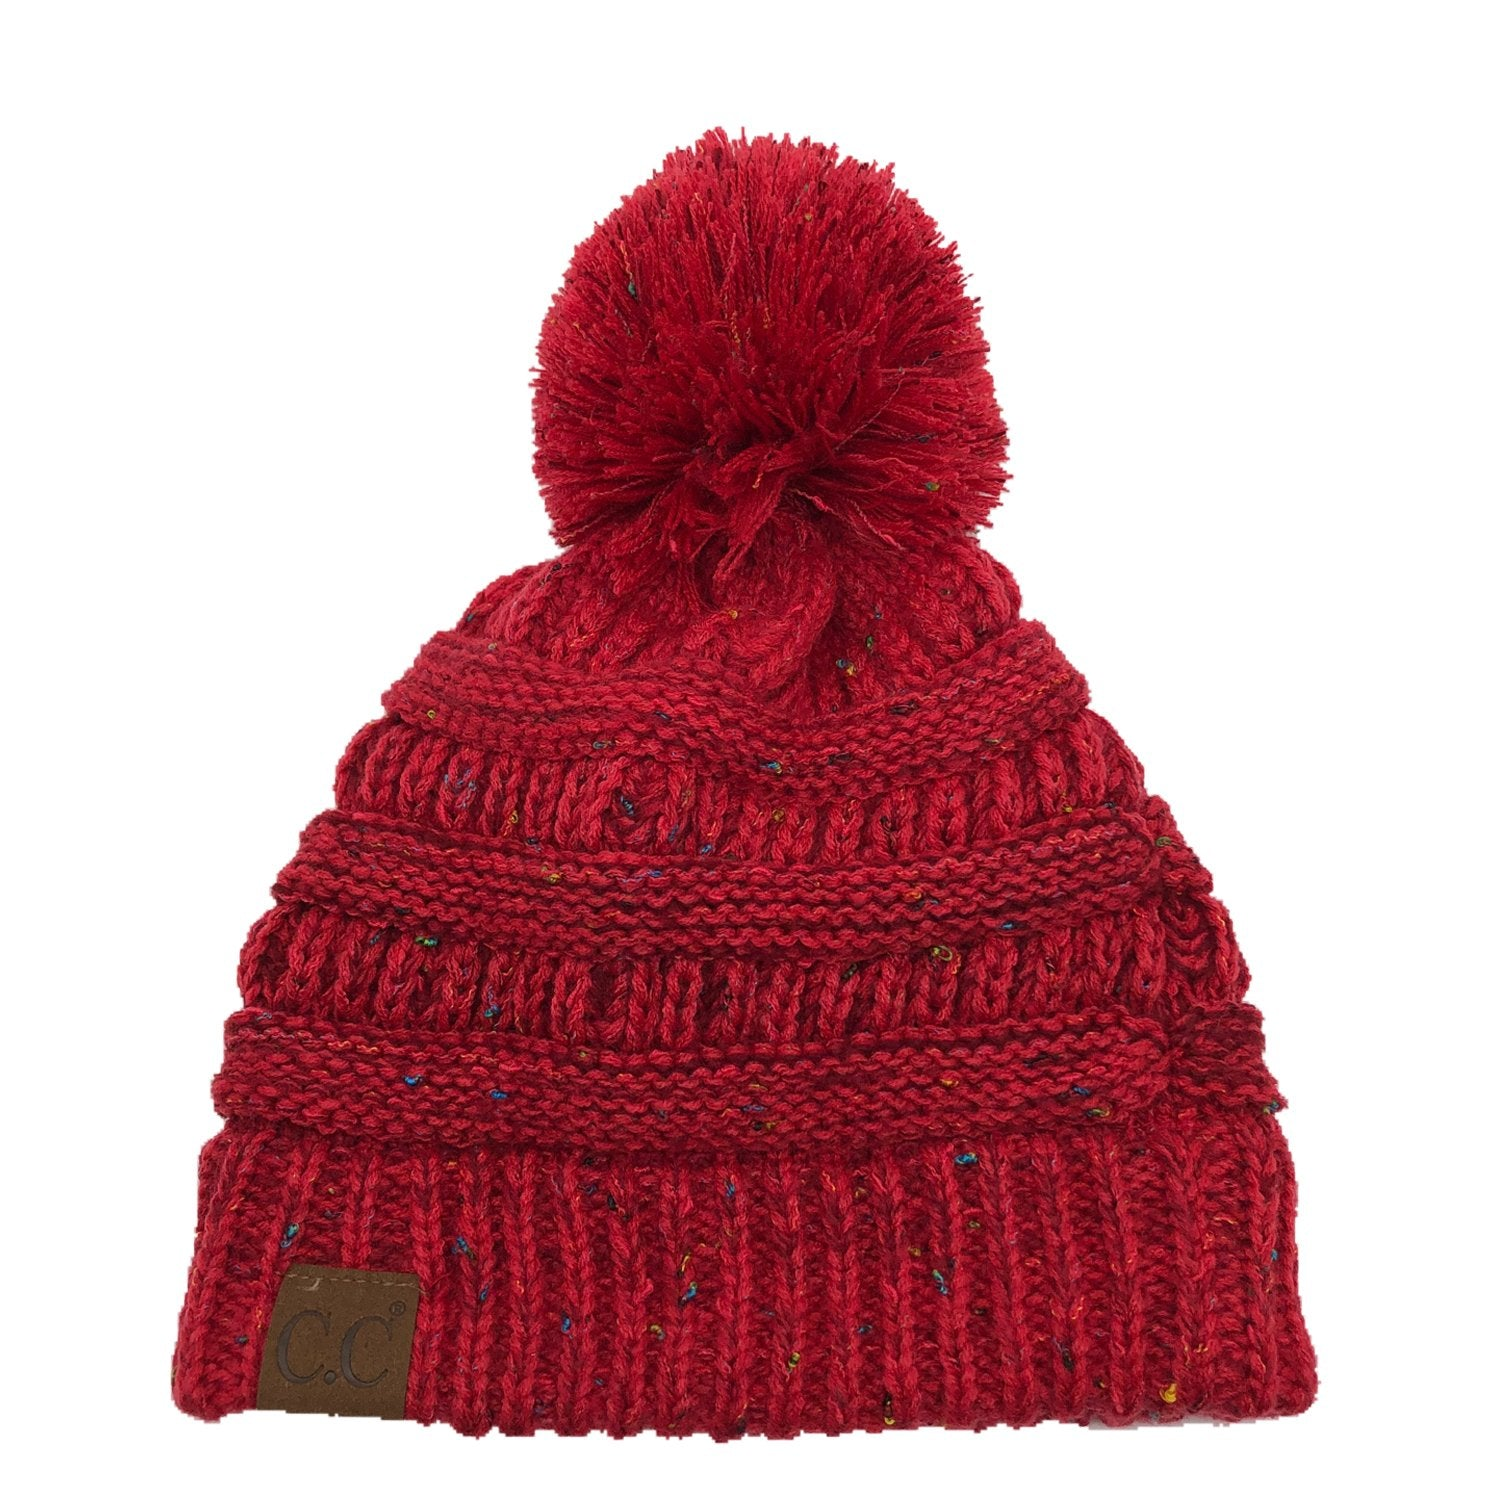 YJ-817 Ombre Speckled Pom Beanie - Red